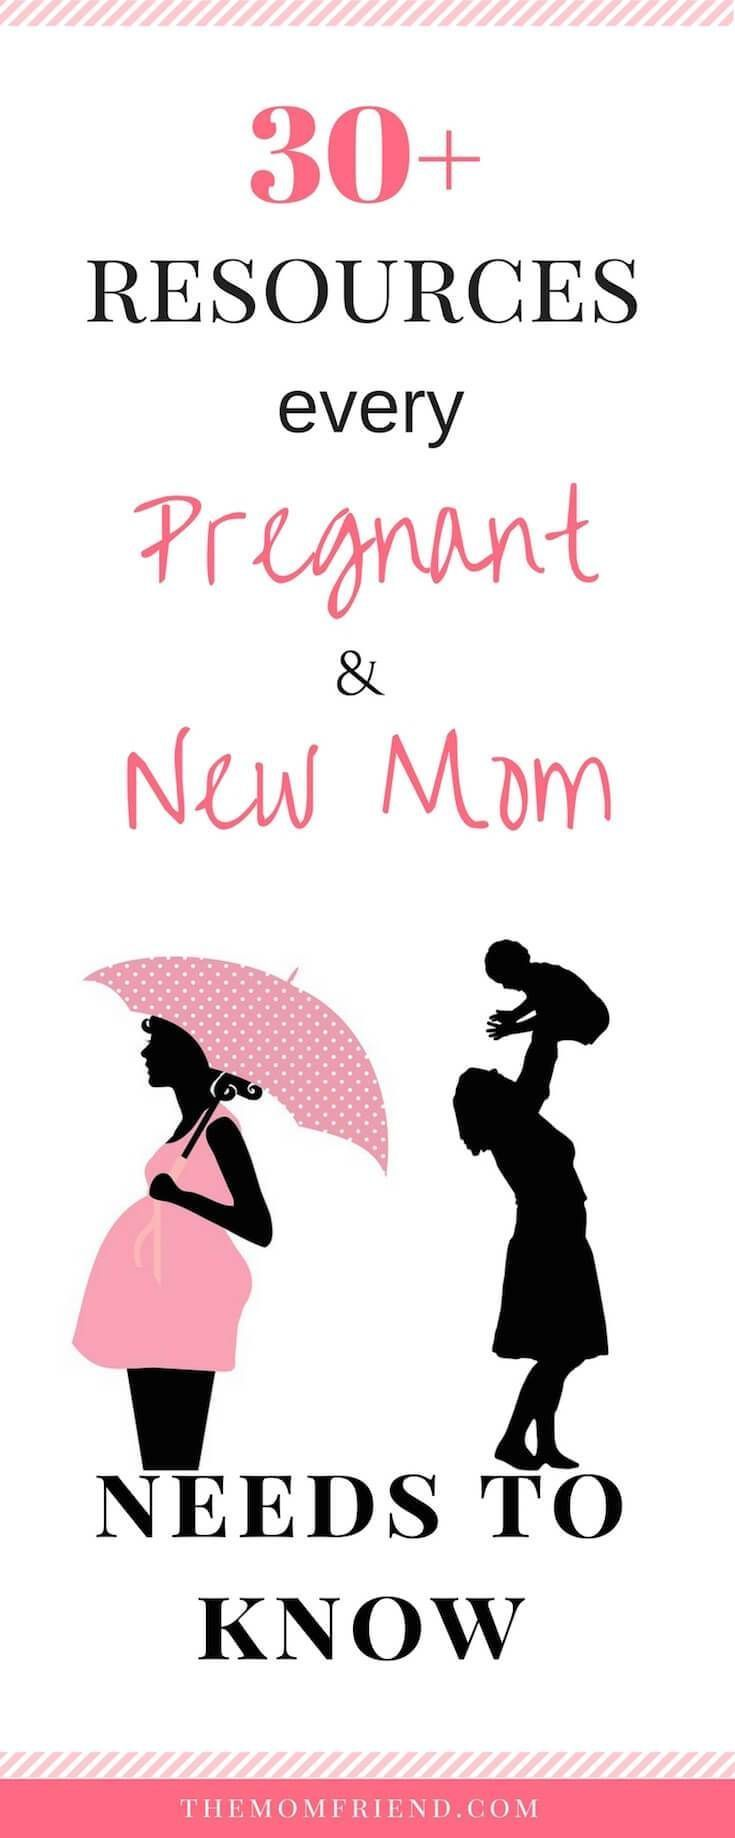 The best websites, blogs, FB pages & more for pregnancy & new moms. Get weekly pregnancy updates and create a baby registry, read baby gear guides, and get inspired by blogs about motherhood. pregnancy, new mom tips, motherhood, first time mom resources,